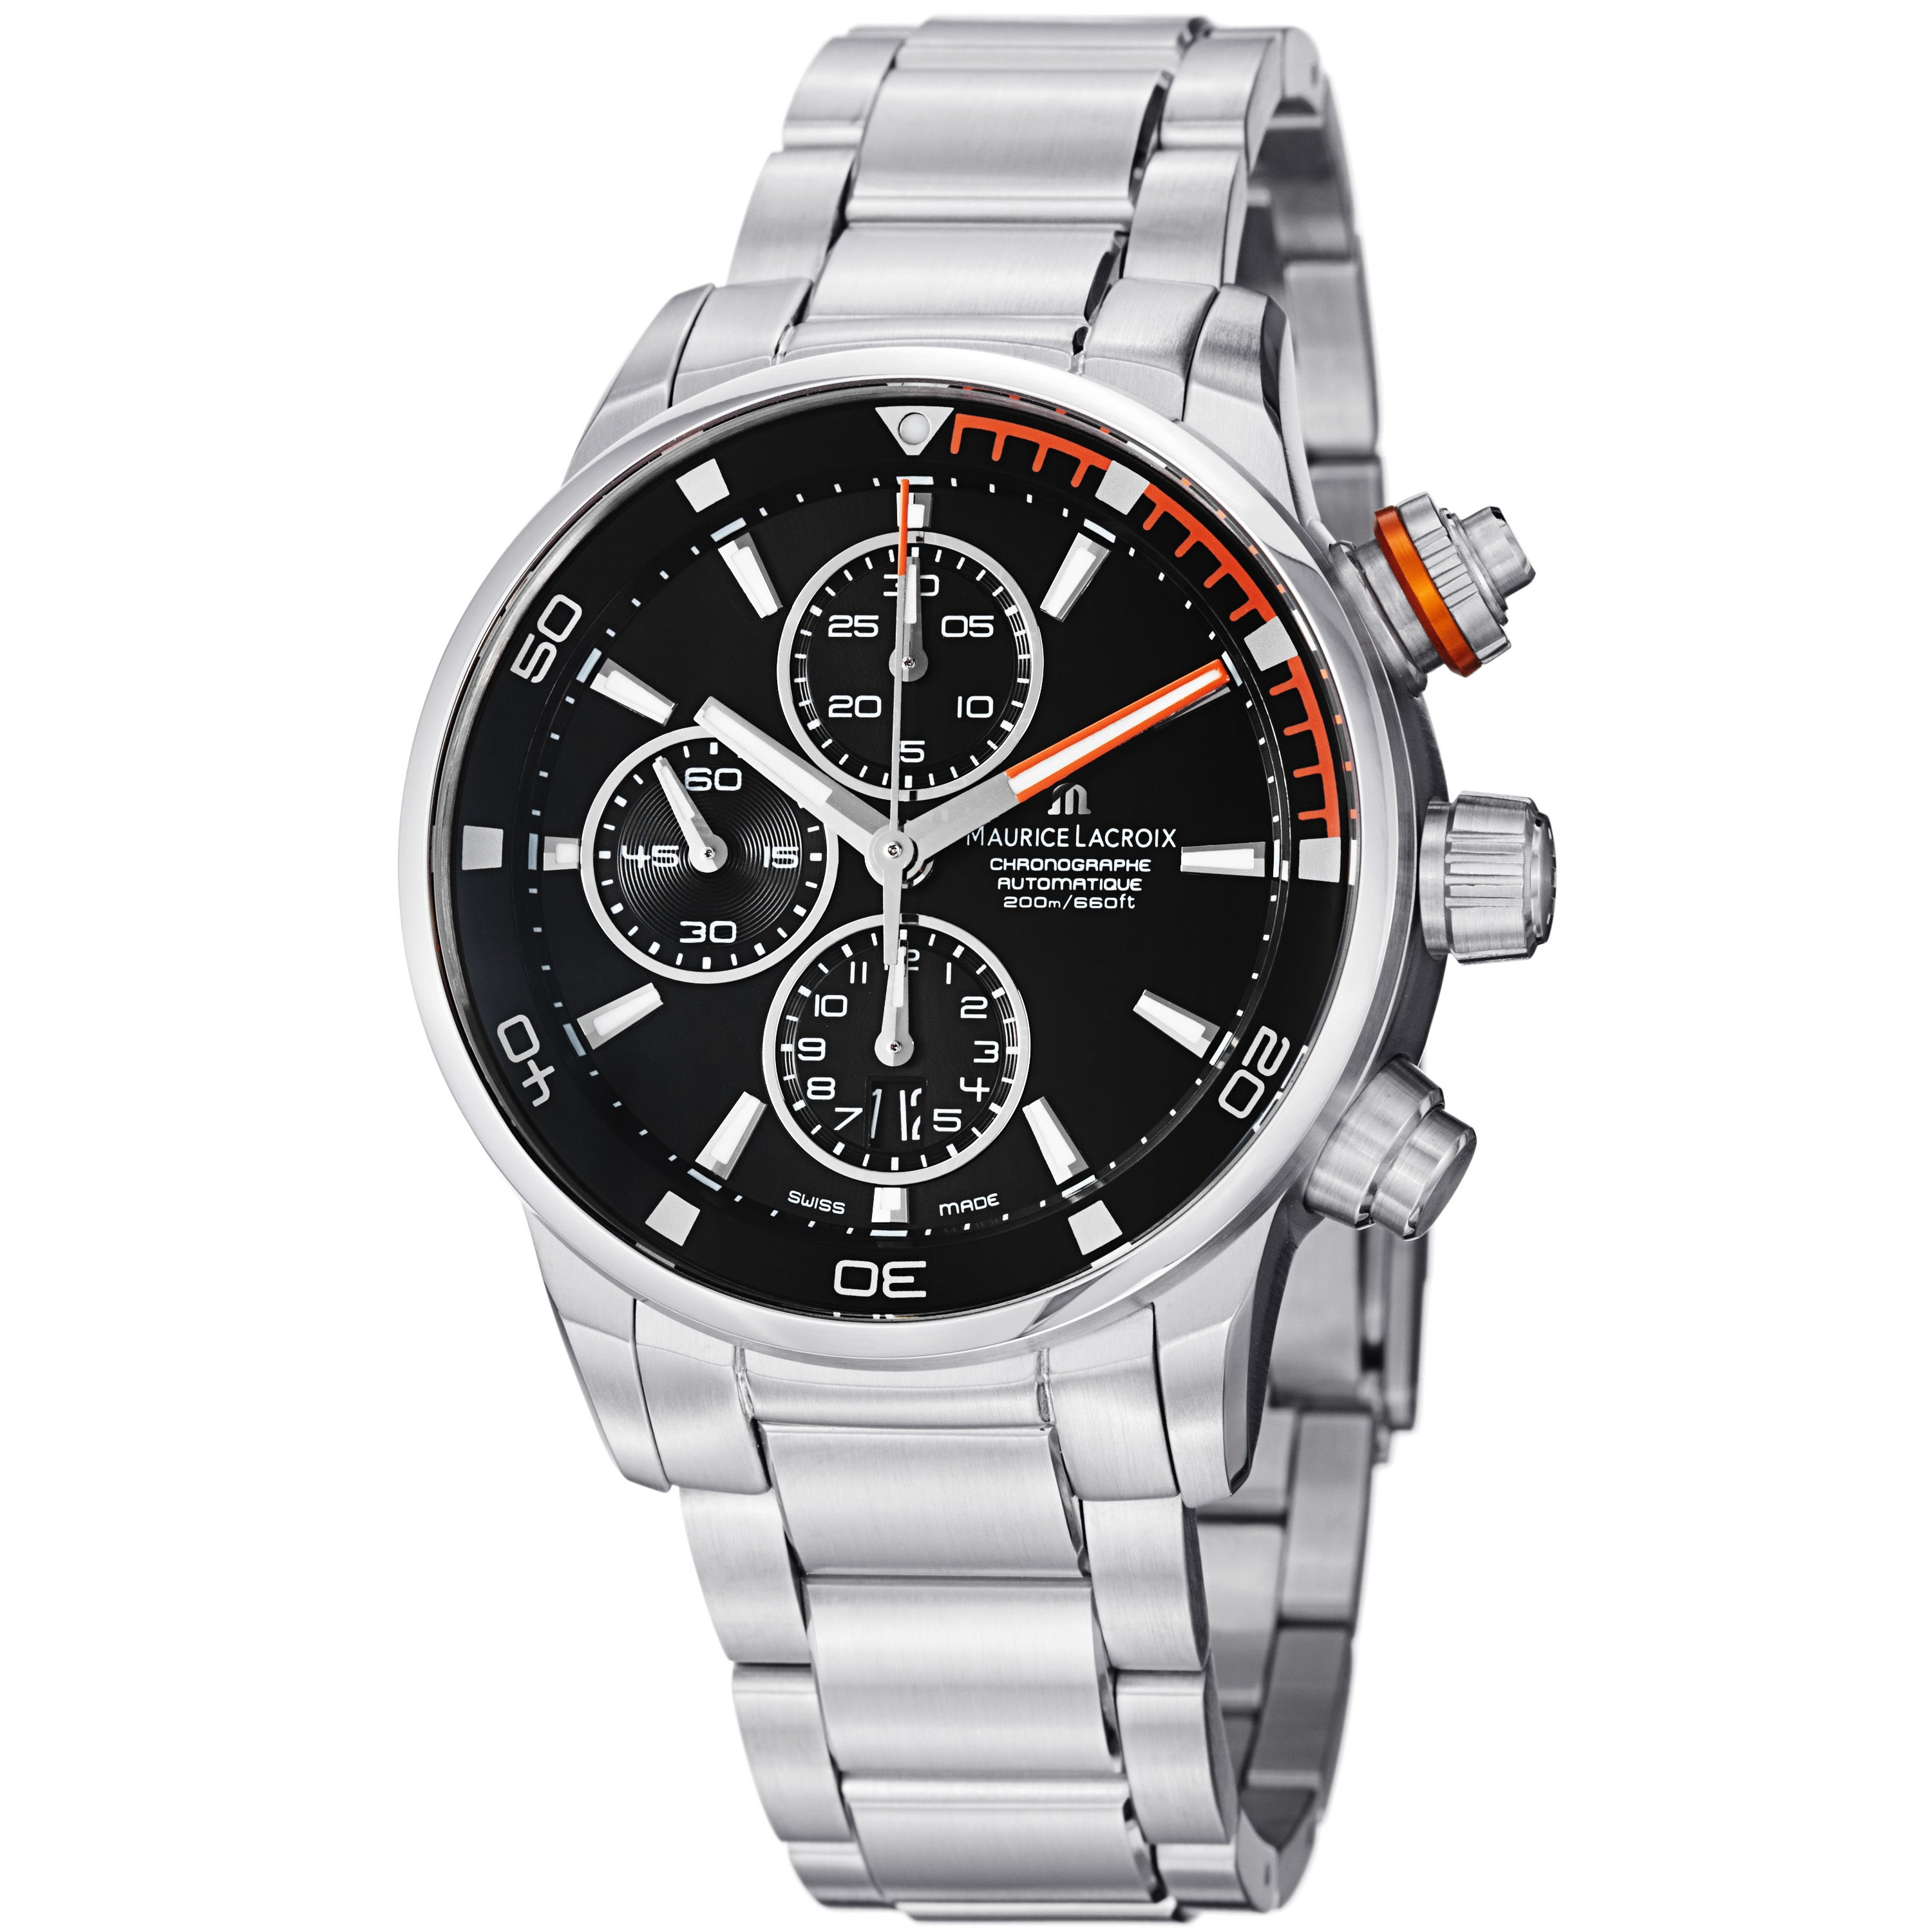 Maurice Lacroix Men's 'Pontos' Black Dial Chronograph Automatic Watch